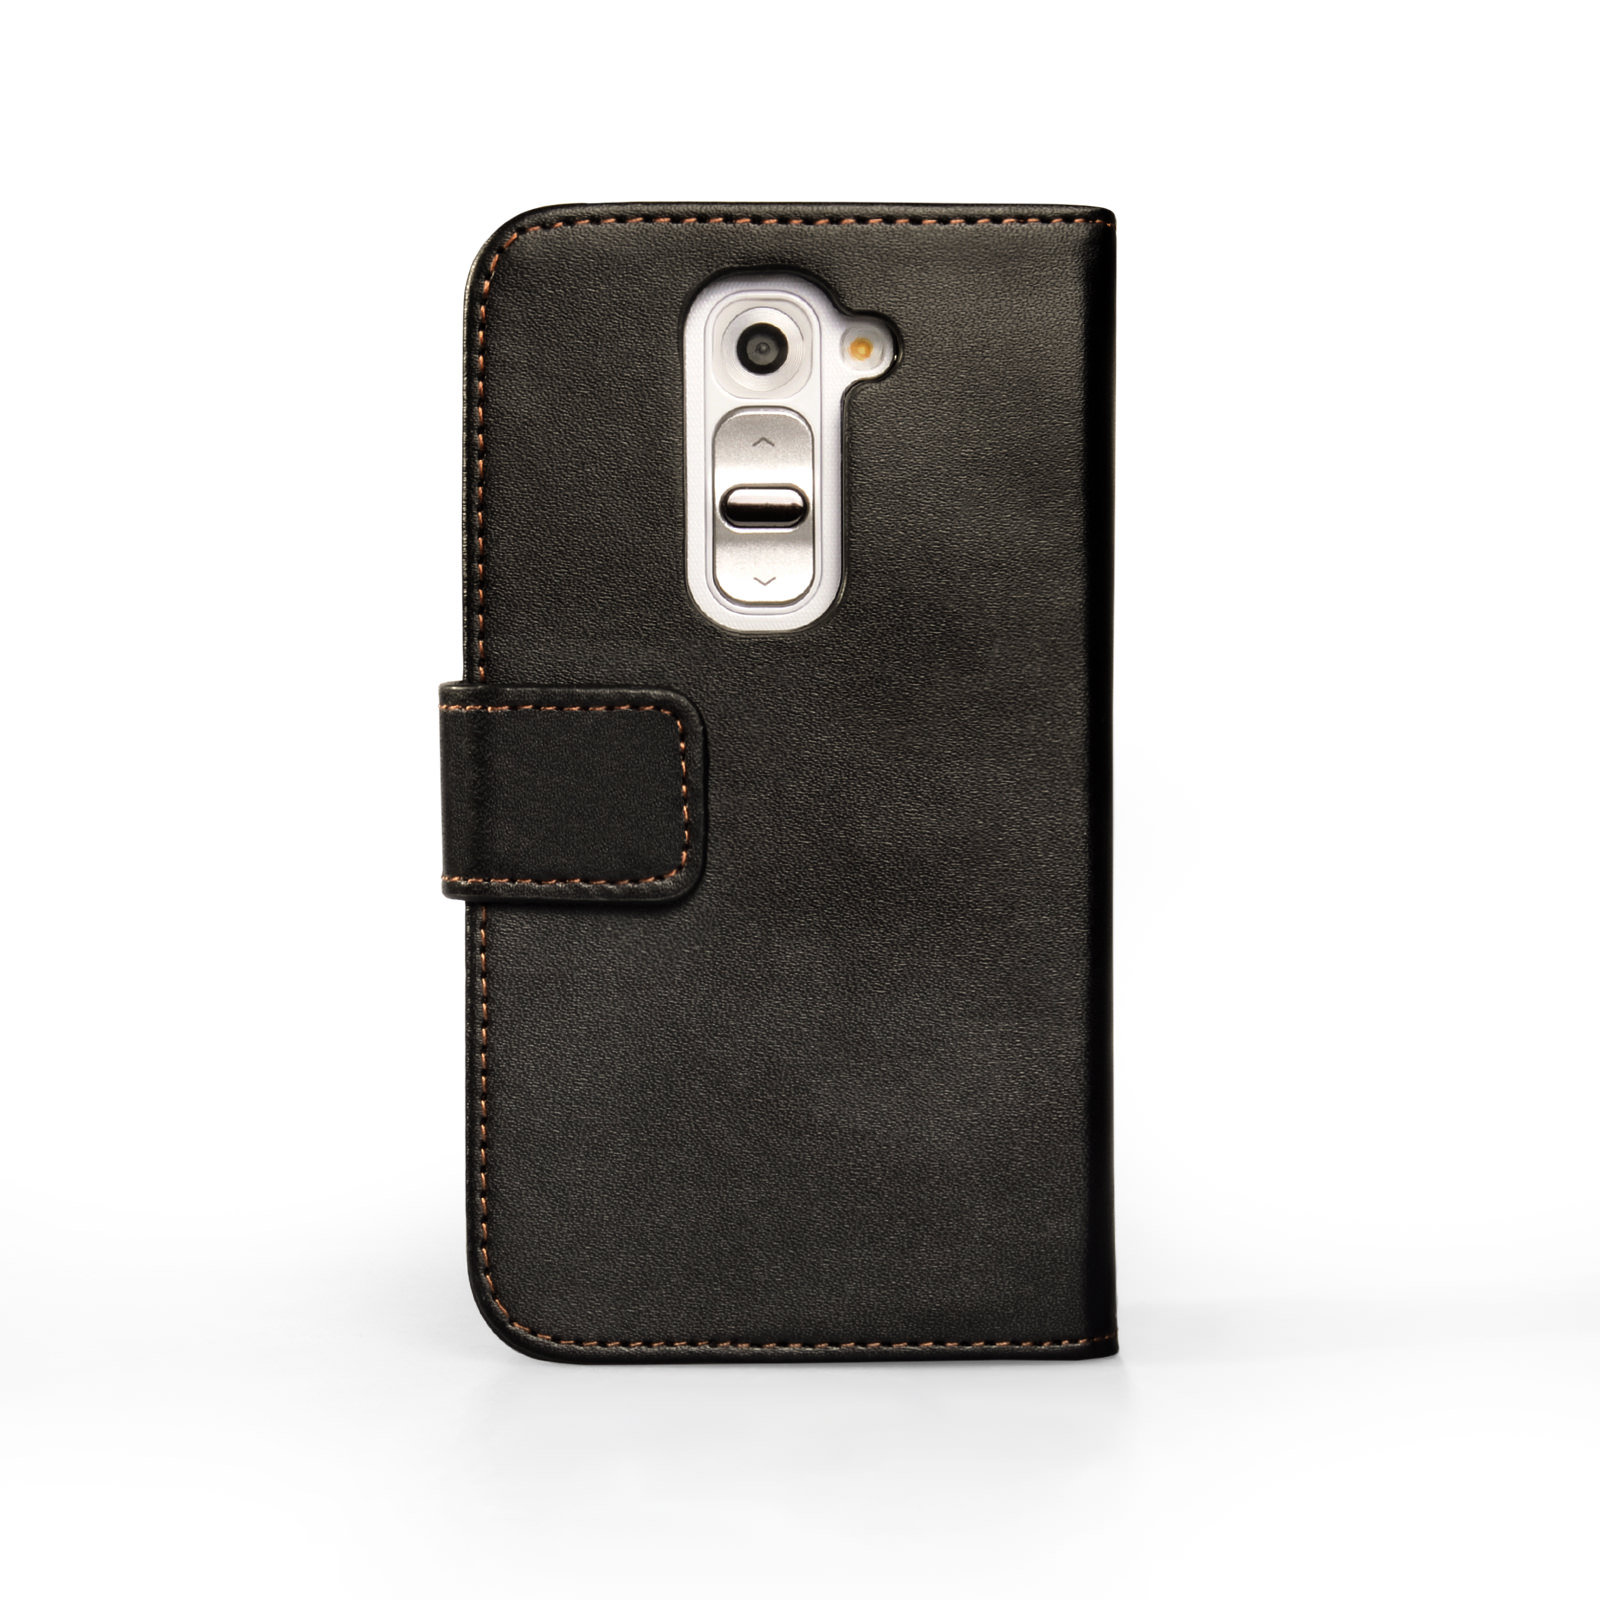 huge discount 6fdae 7249e Yousave Accessories LG G2 Mini Leather-Effect Wallet Case - Black